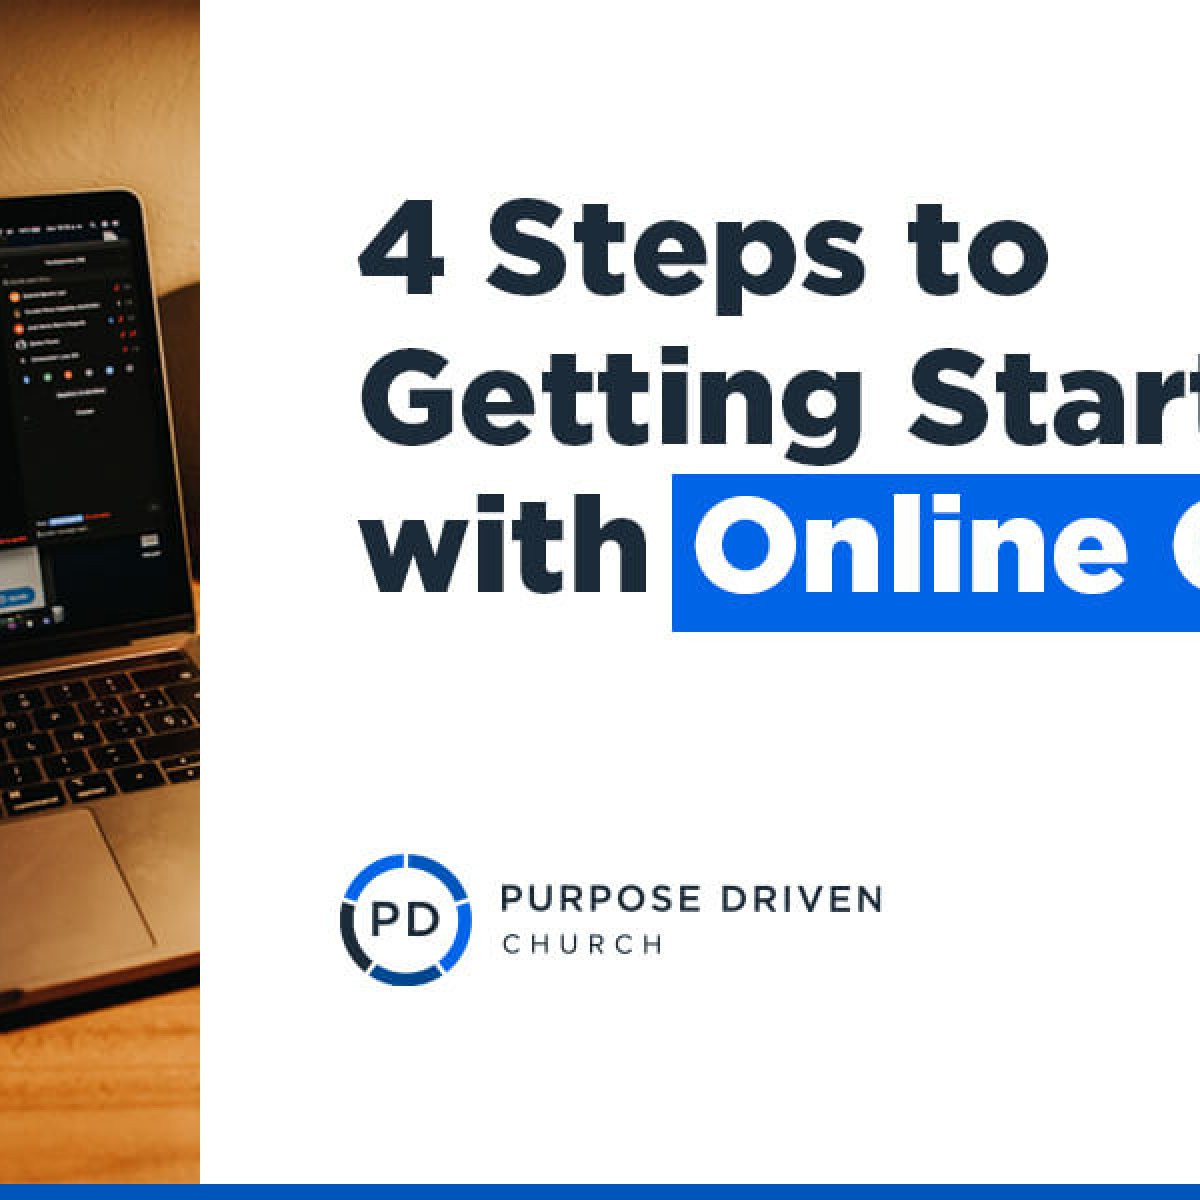 PD_4Steps_OnlineGroupsMCHeader